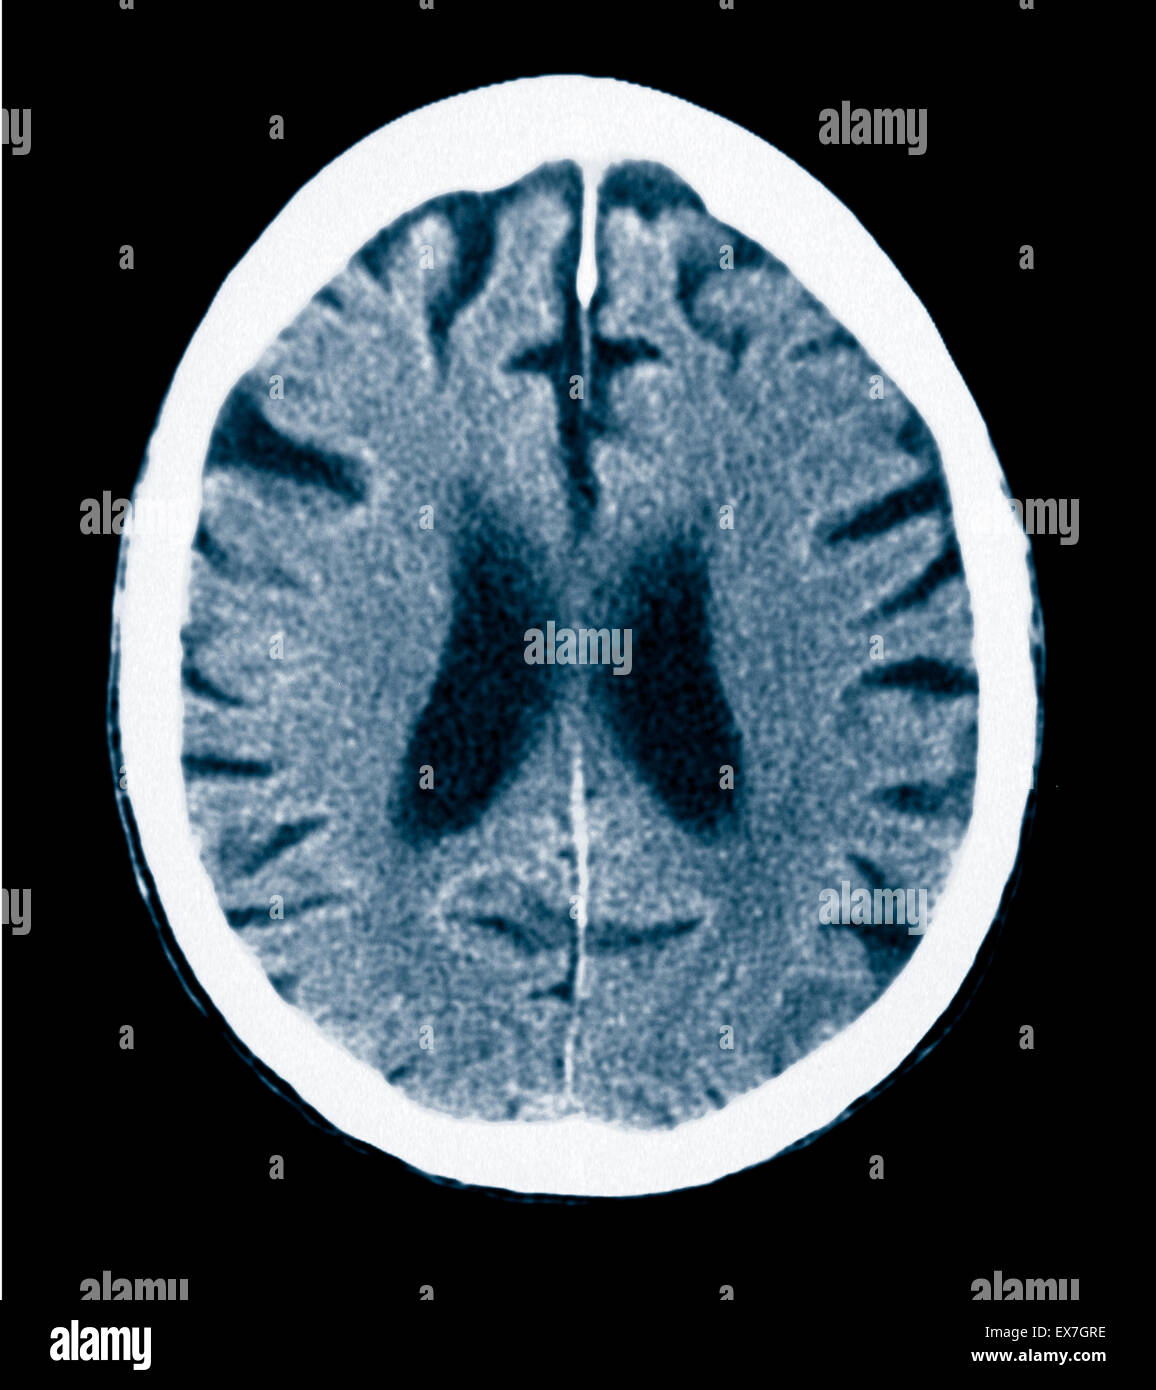 CT scan of an 84 year old man with Alzheimer's disease.  CT shows brain atrophy. - Stock Image